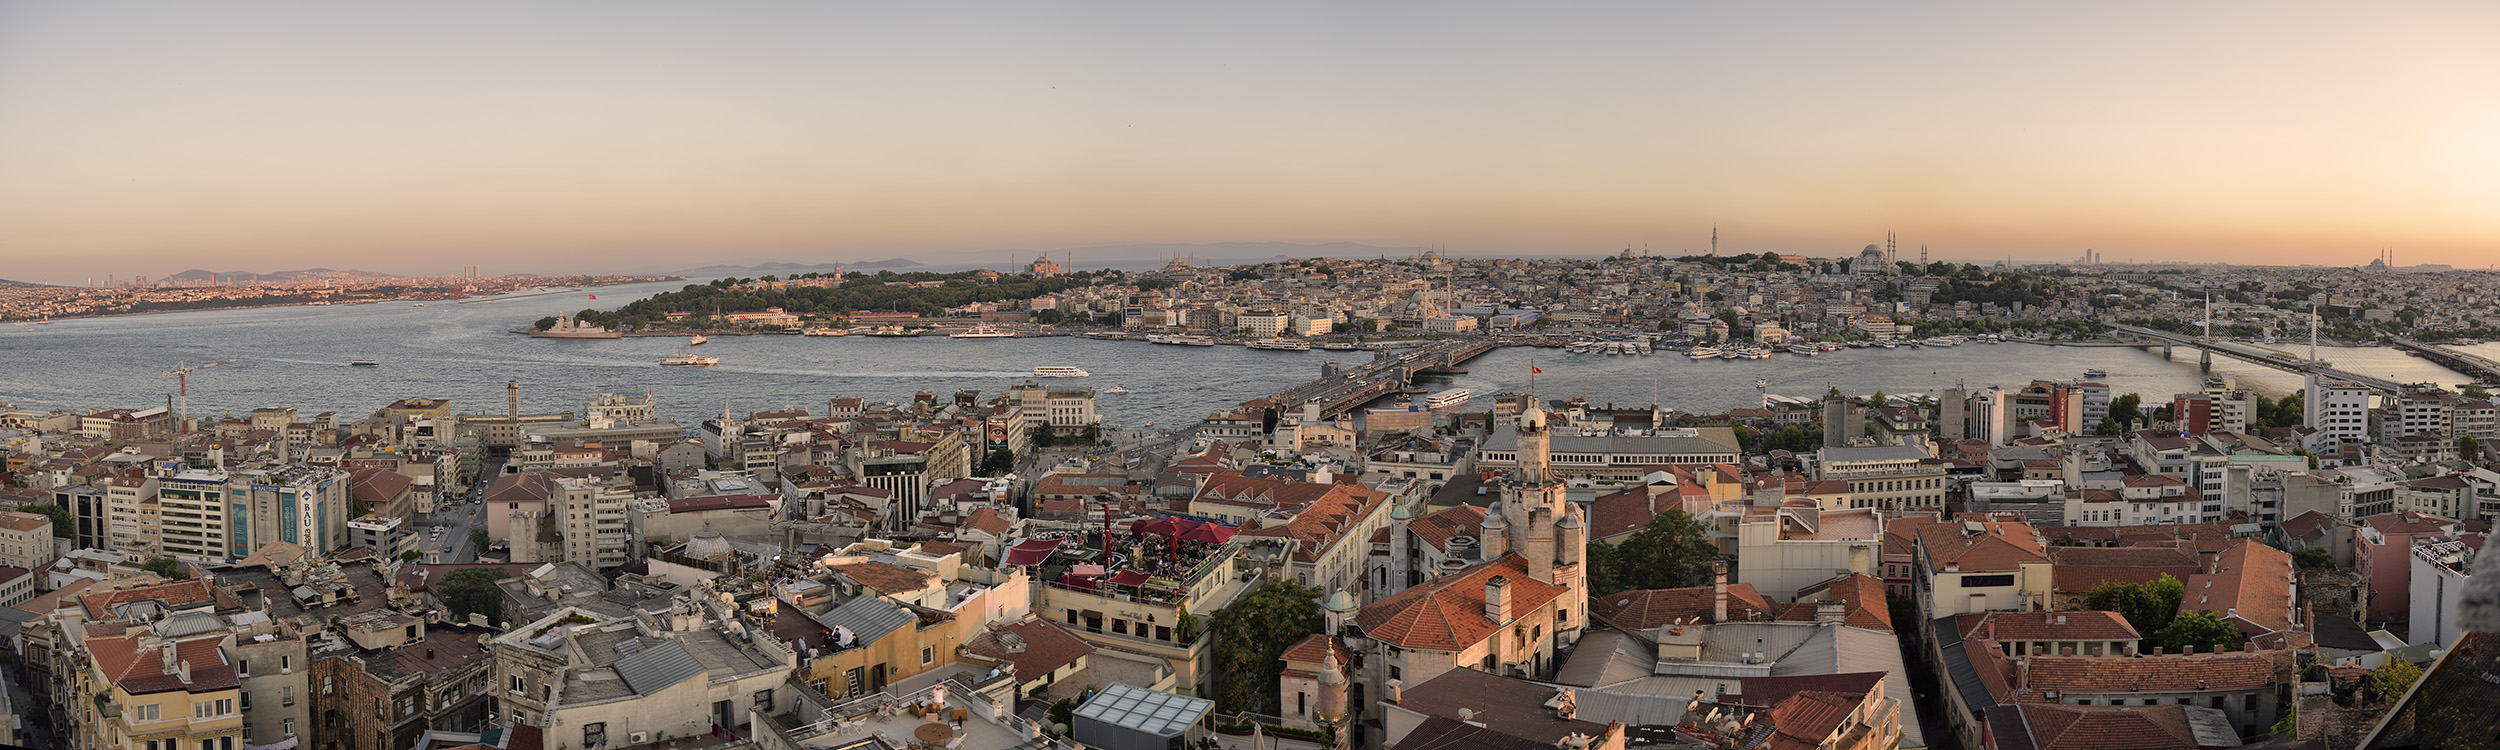 Sunset over Istanbul Old City